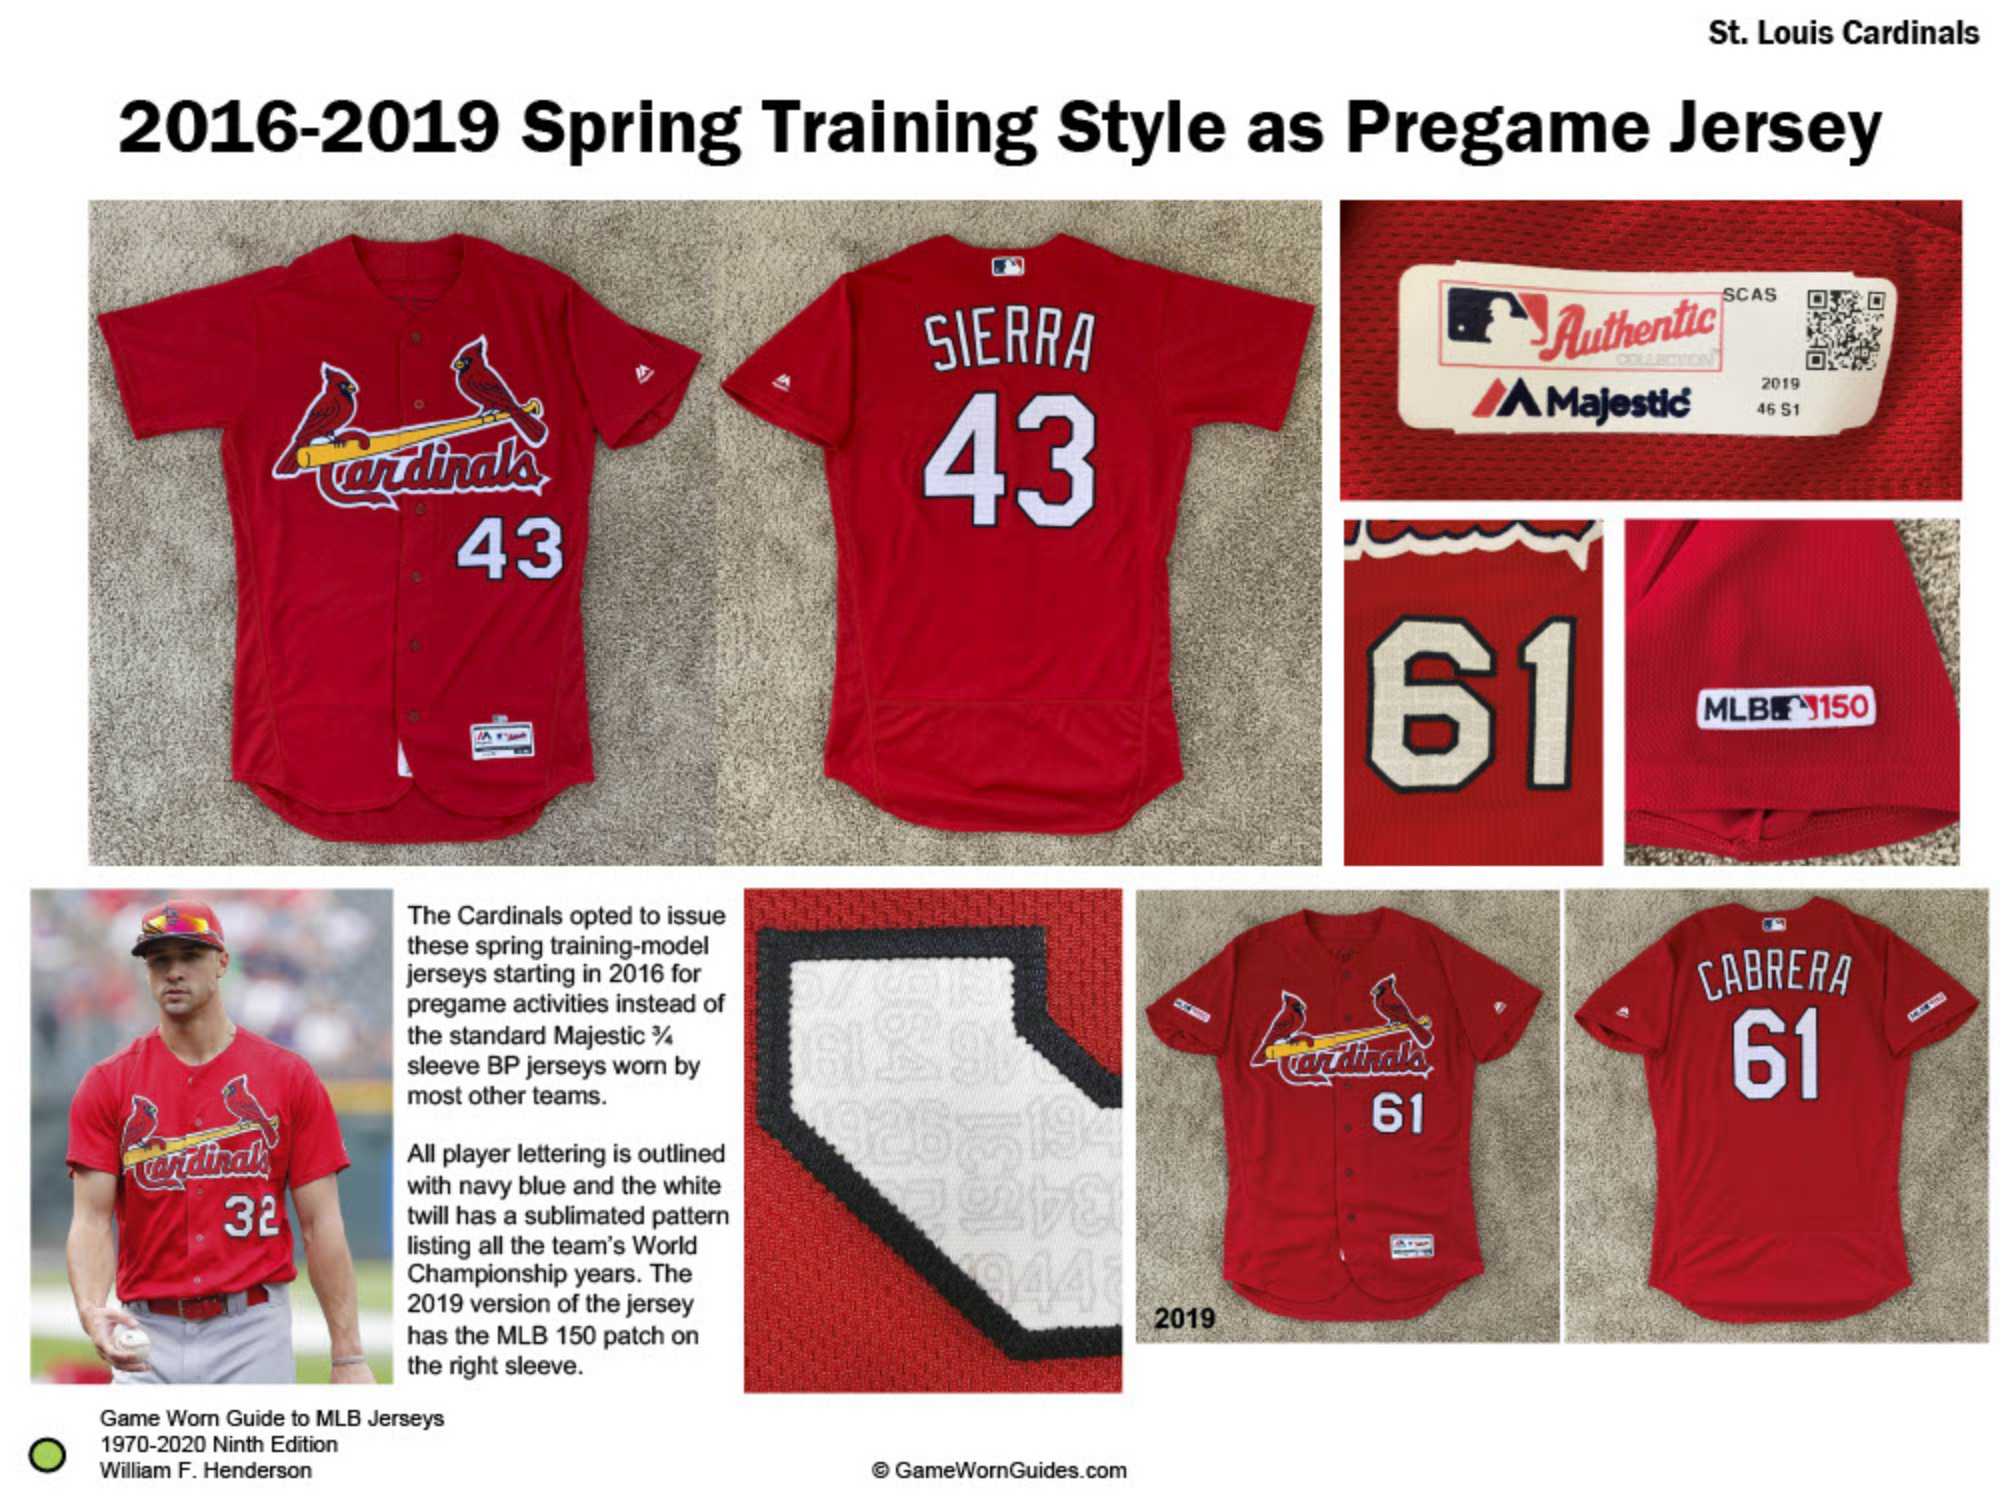 Game Worn Guide to St. Louis Cardinals Jerseys (1970-2020)